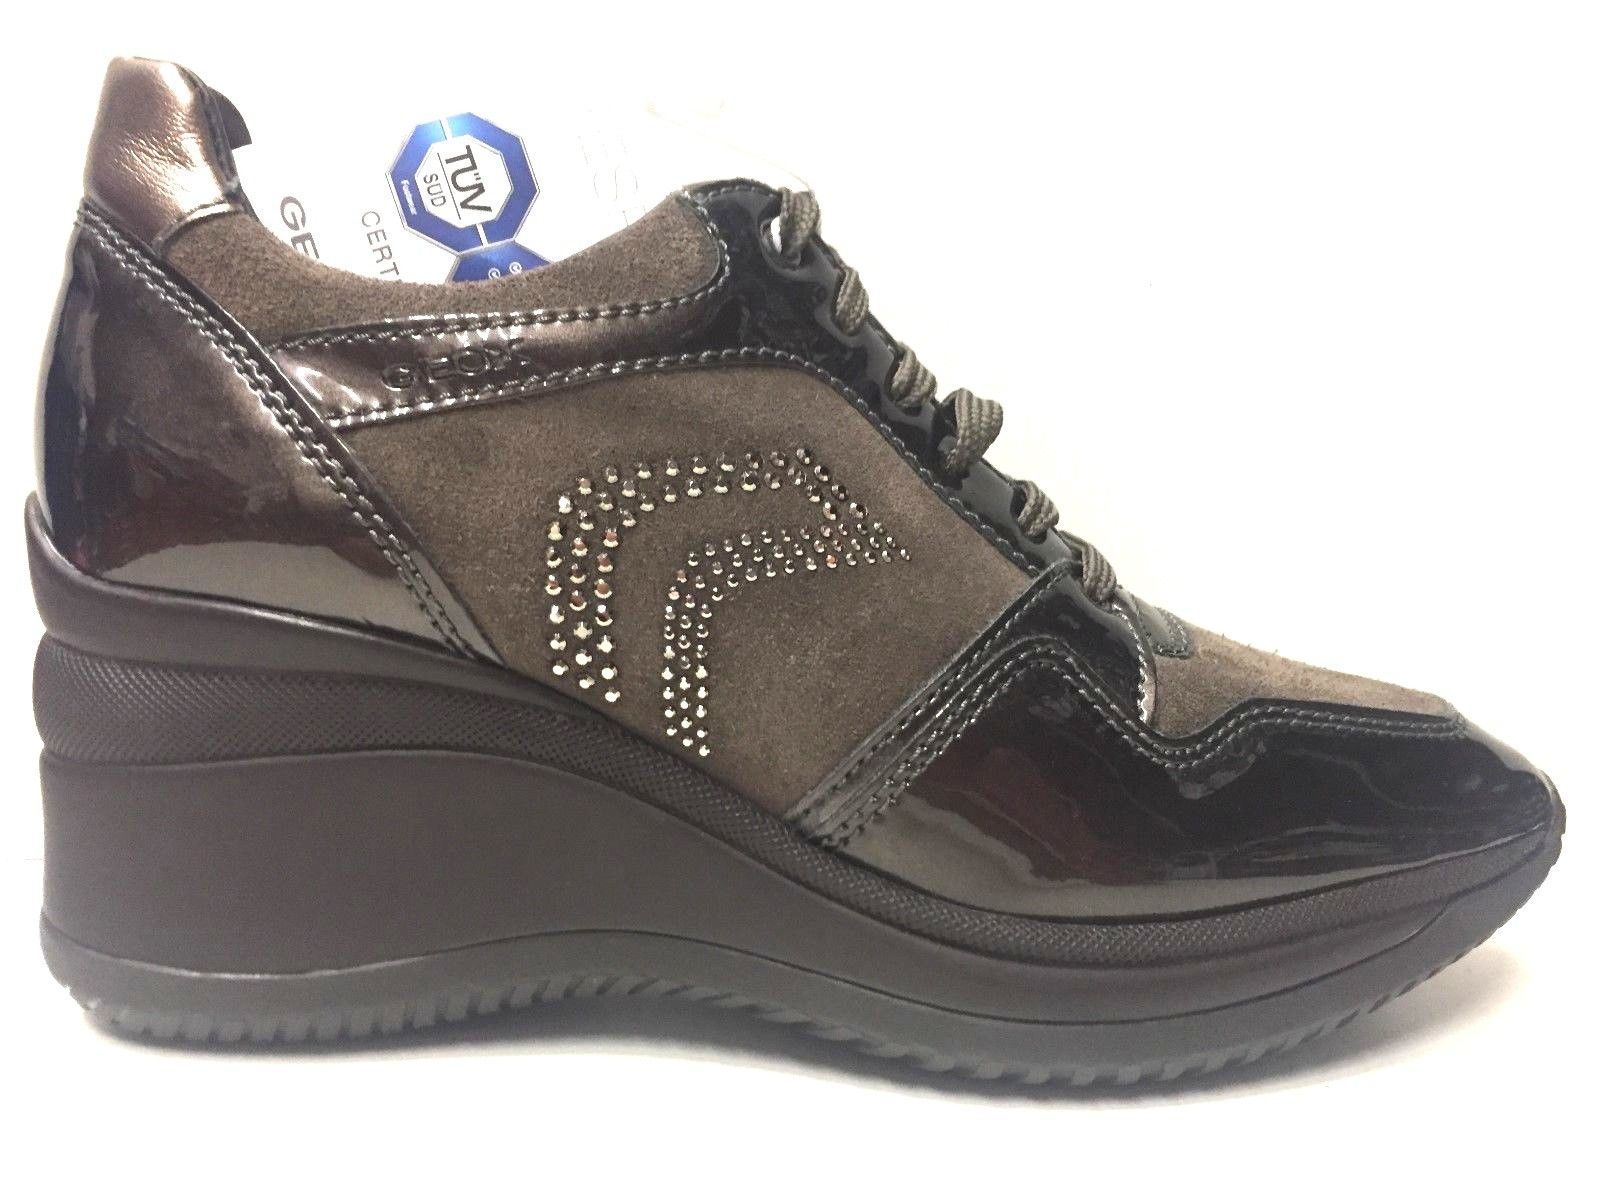 SCARPE CASUAL DONNA GEOX ORIGINAL REGINA D6475B PELLE SHOES LEATHER A/I 2016 NEW